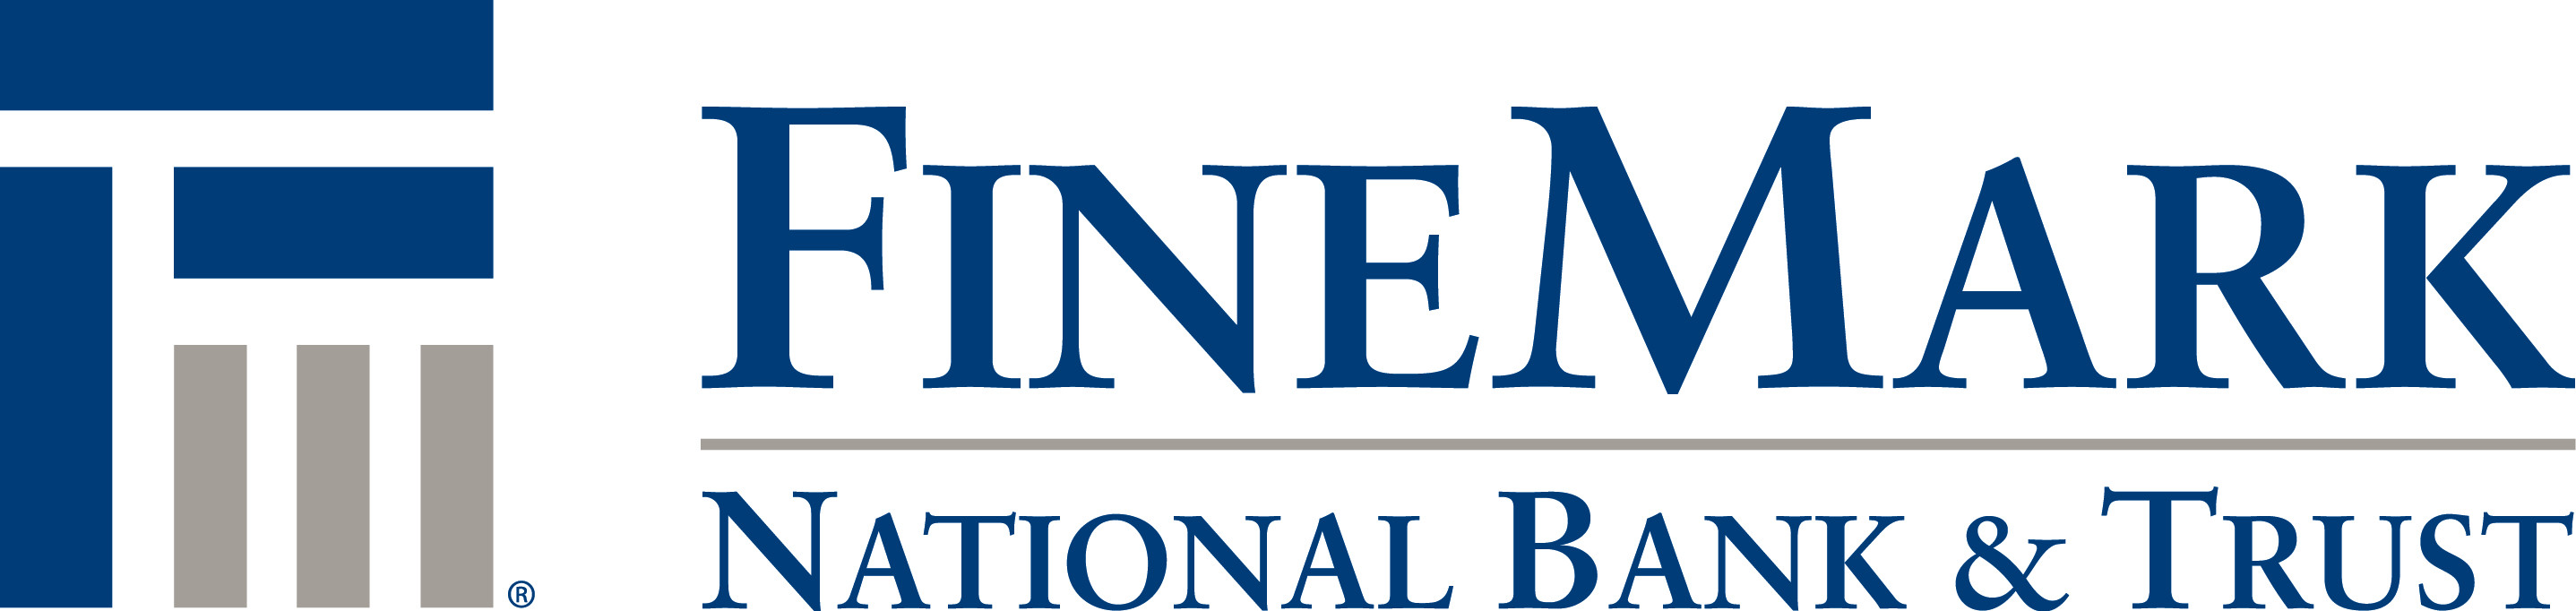 FineMark National Bank & Trust logo